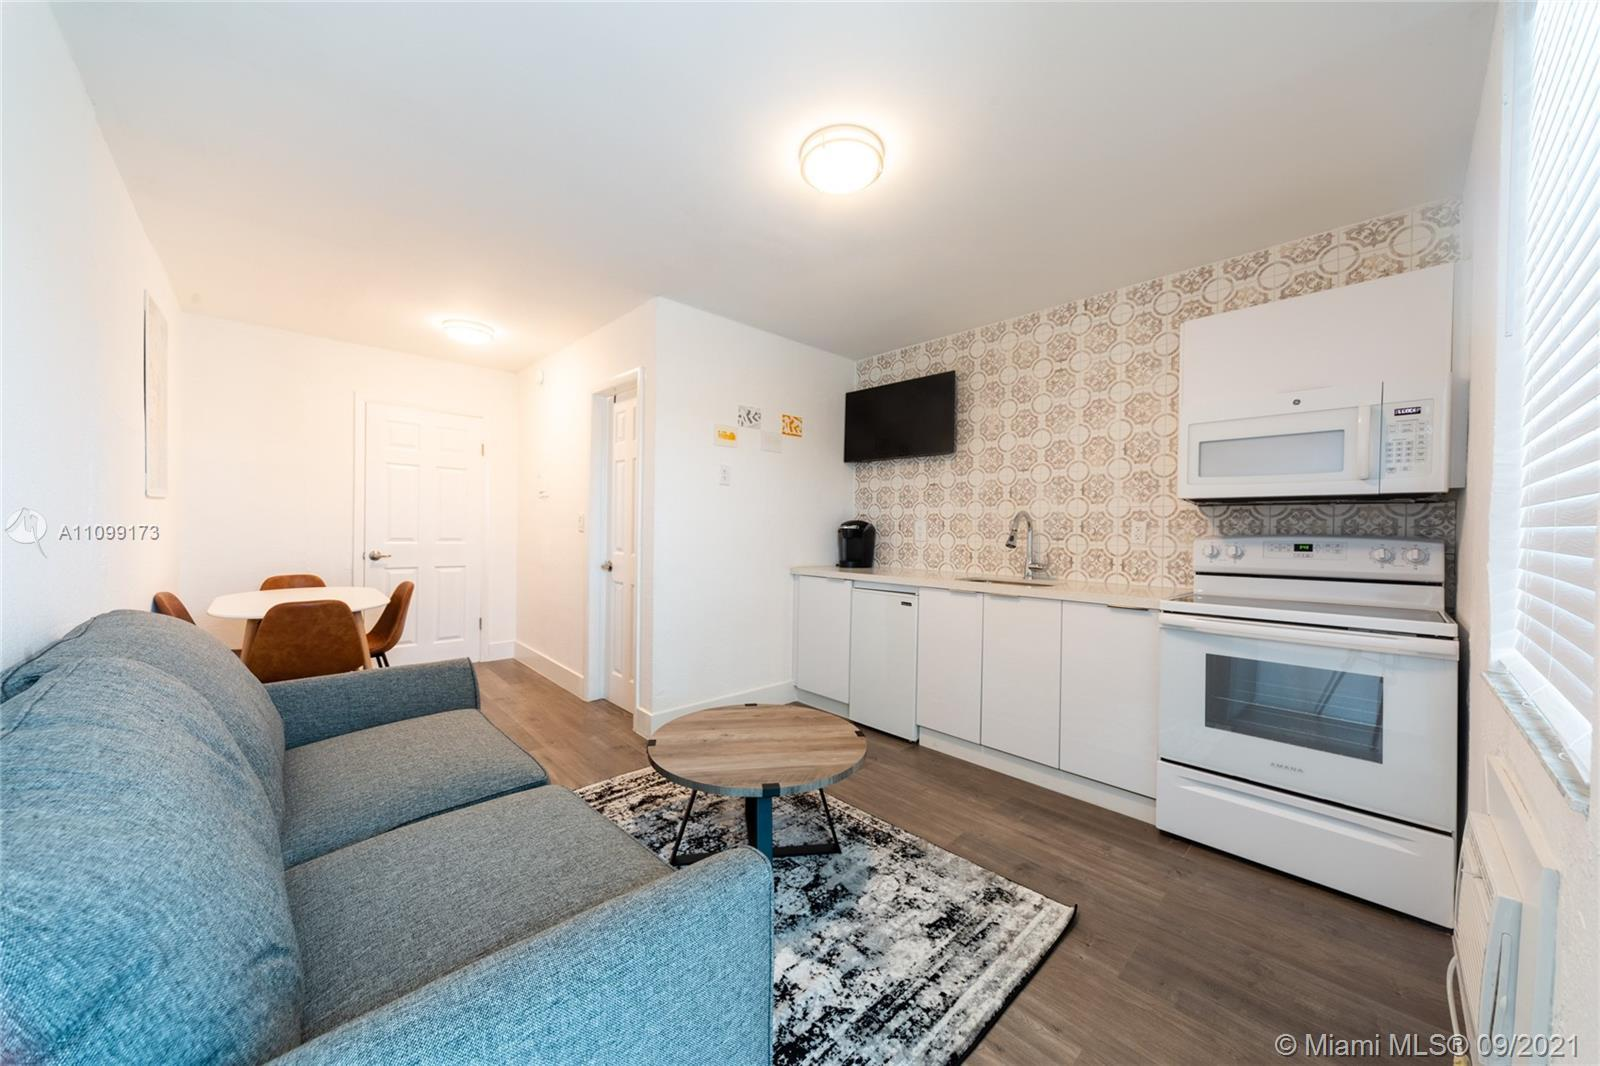 TURN KEY LEGAL AIRBNB One bedroom 1 bath totally renovated wood laminate floors faux marble porcelai